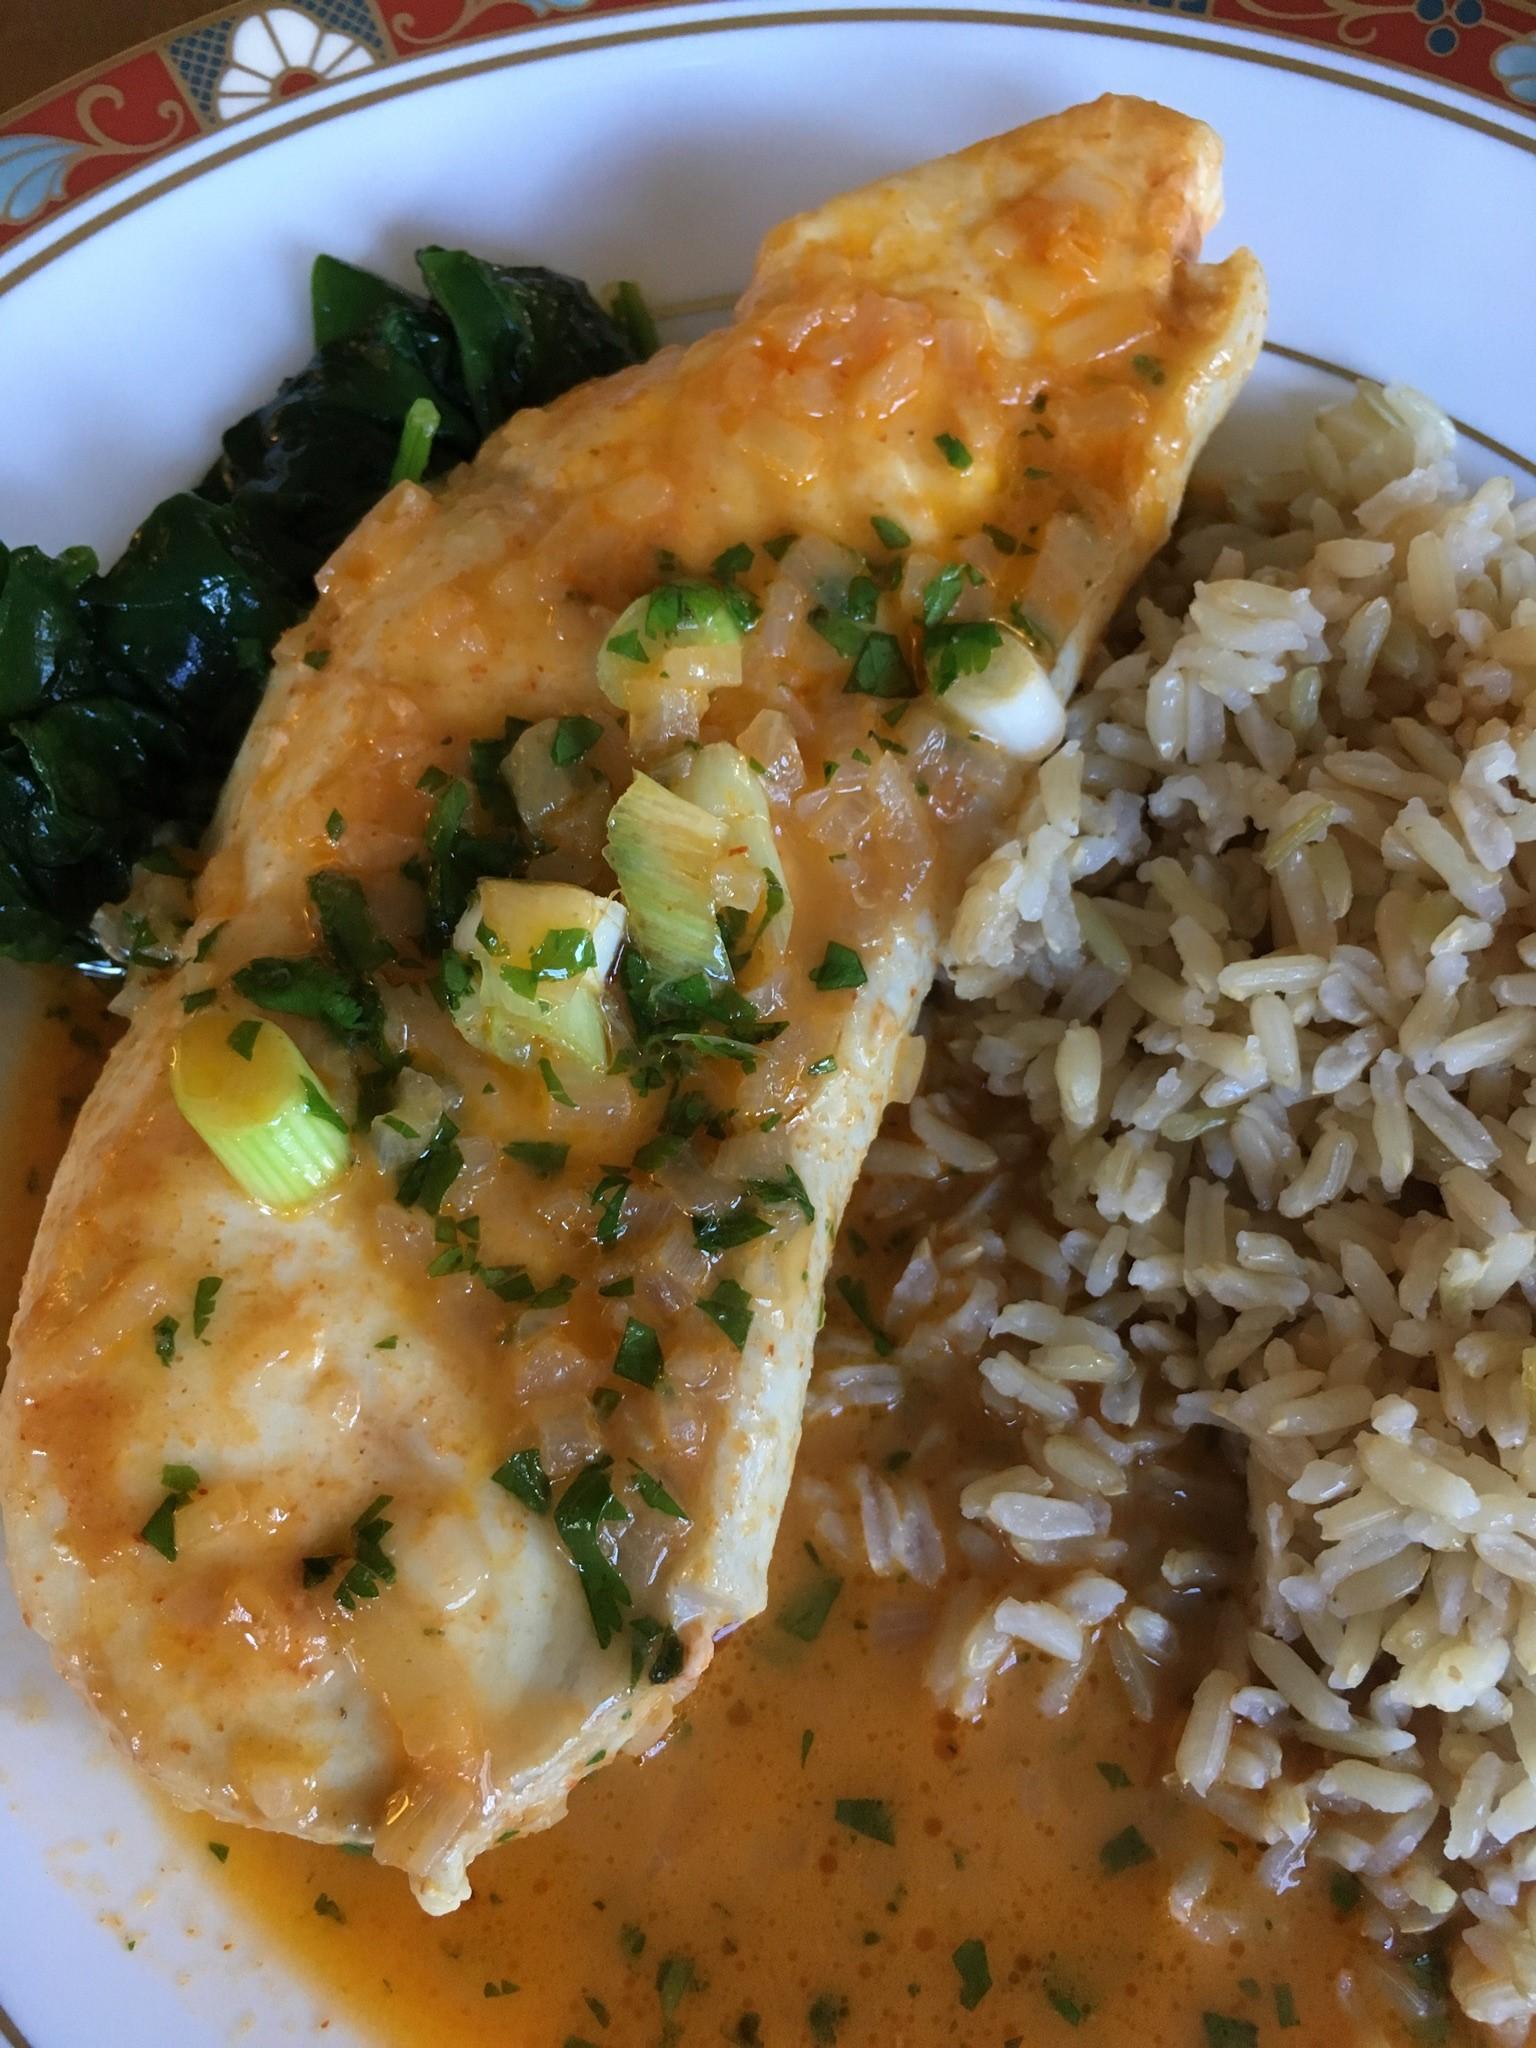 """""""You can use any type of fish filet for this delicious curry dish like halibut, tilapia, or cod,"""" says barbara. """"I have also cooked chicken in the same curry sauce before. Serve with plenty of rice."""""""